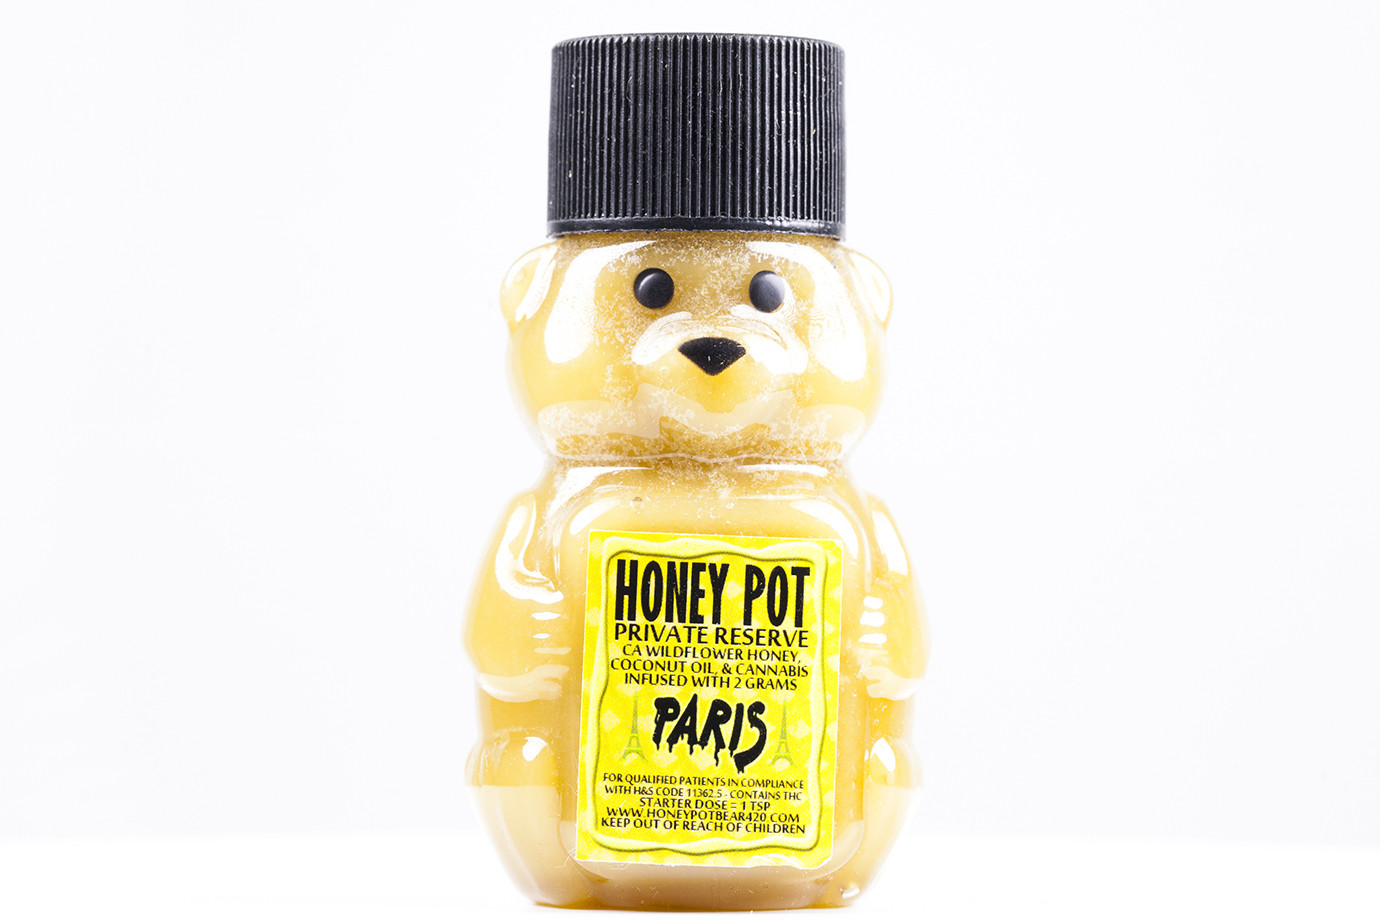 Paris OG Honey Pot